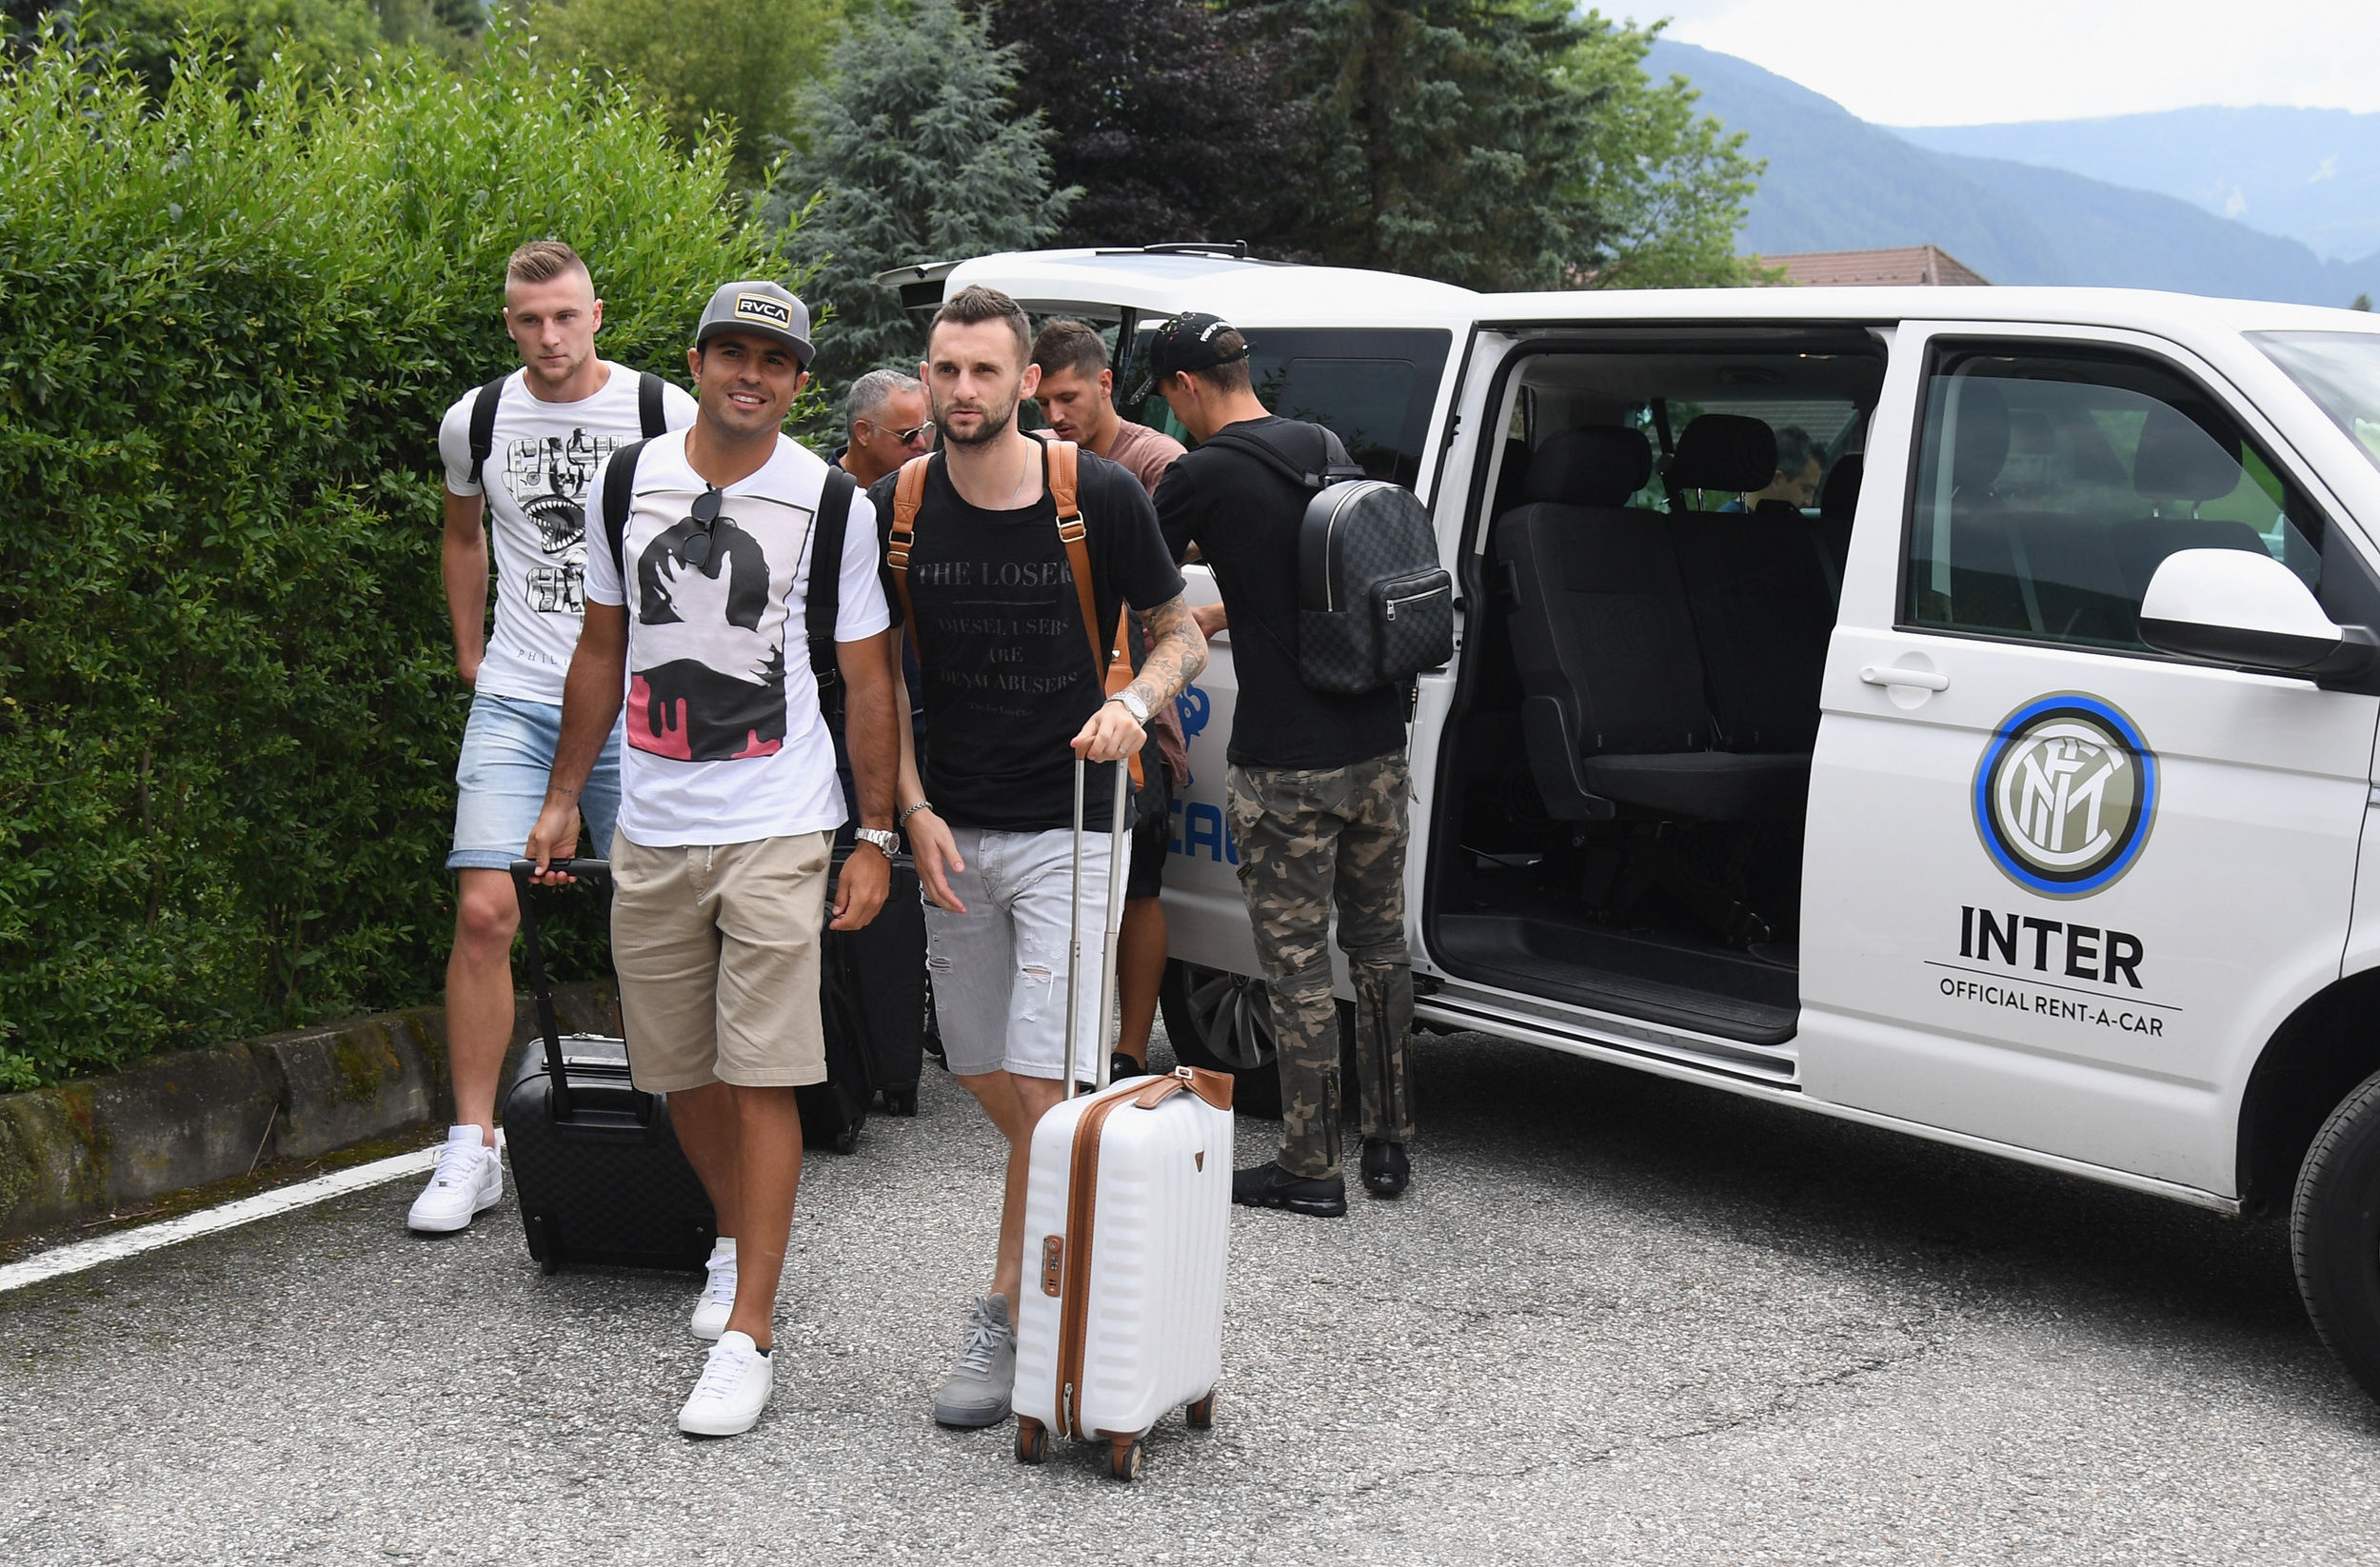 Eleven Inter players arrive in Brunico